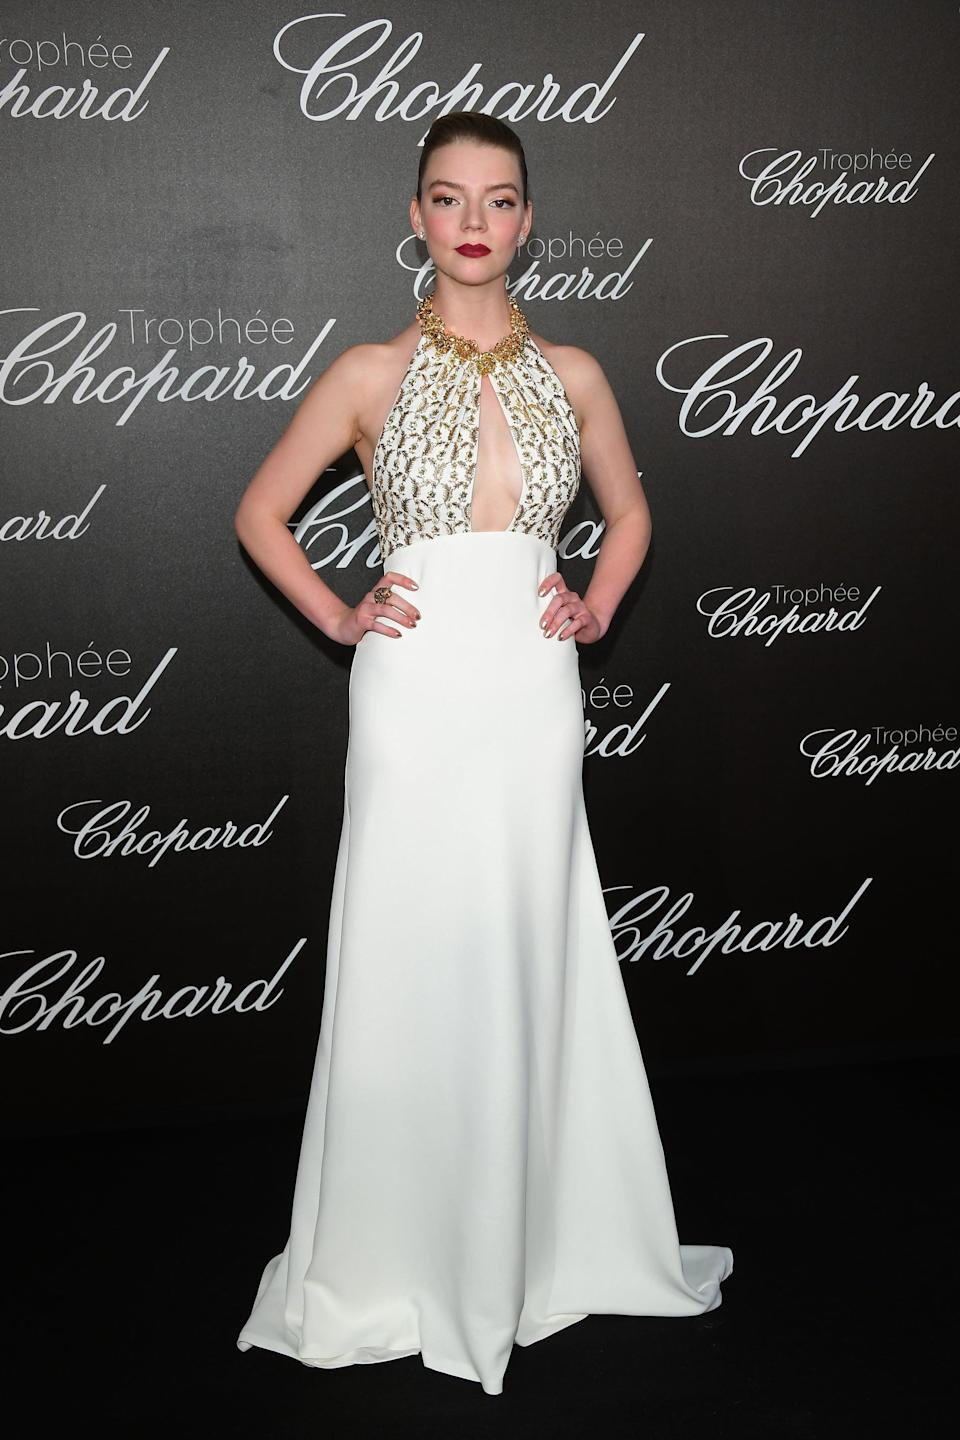 <p>Anya wore a Miu Miu dress with, of course, Chopard jewellery.</p>